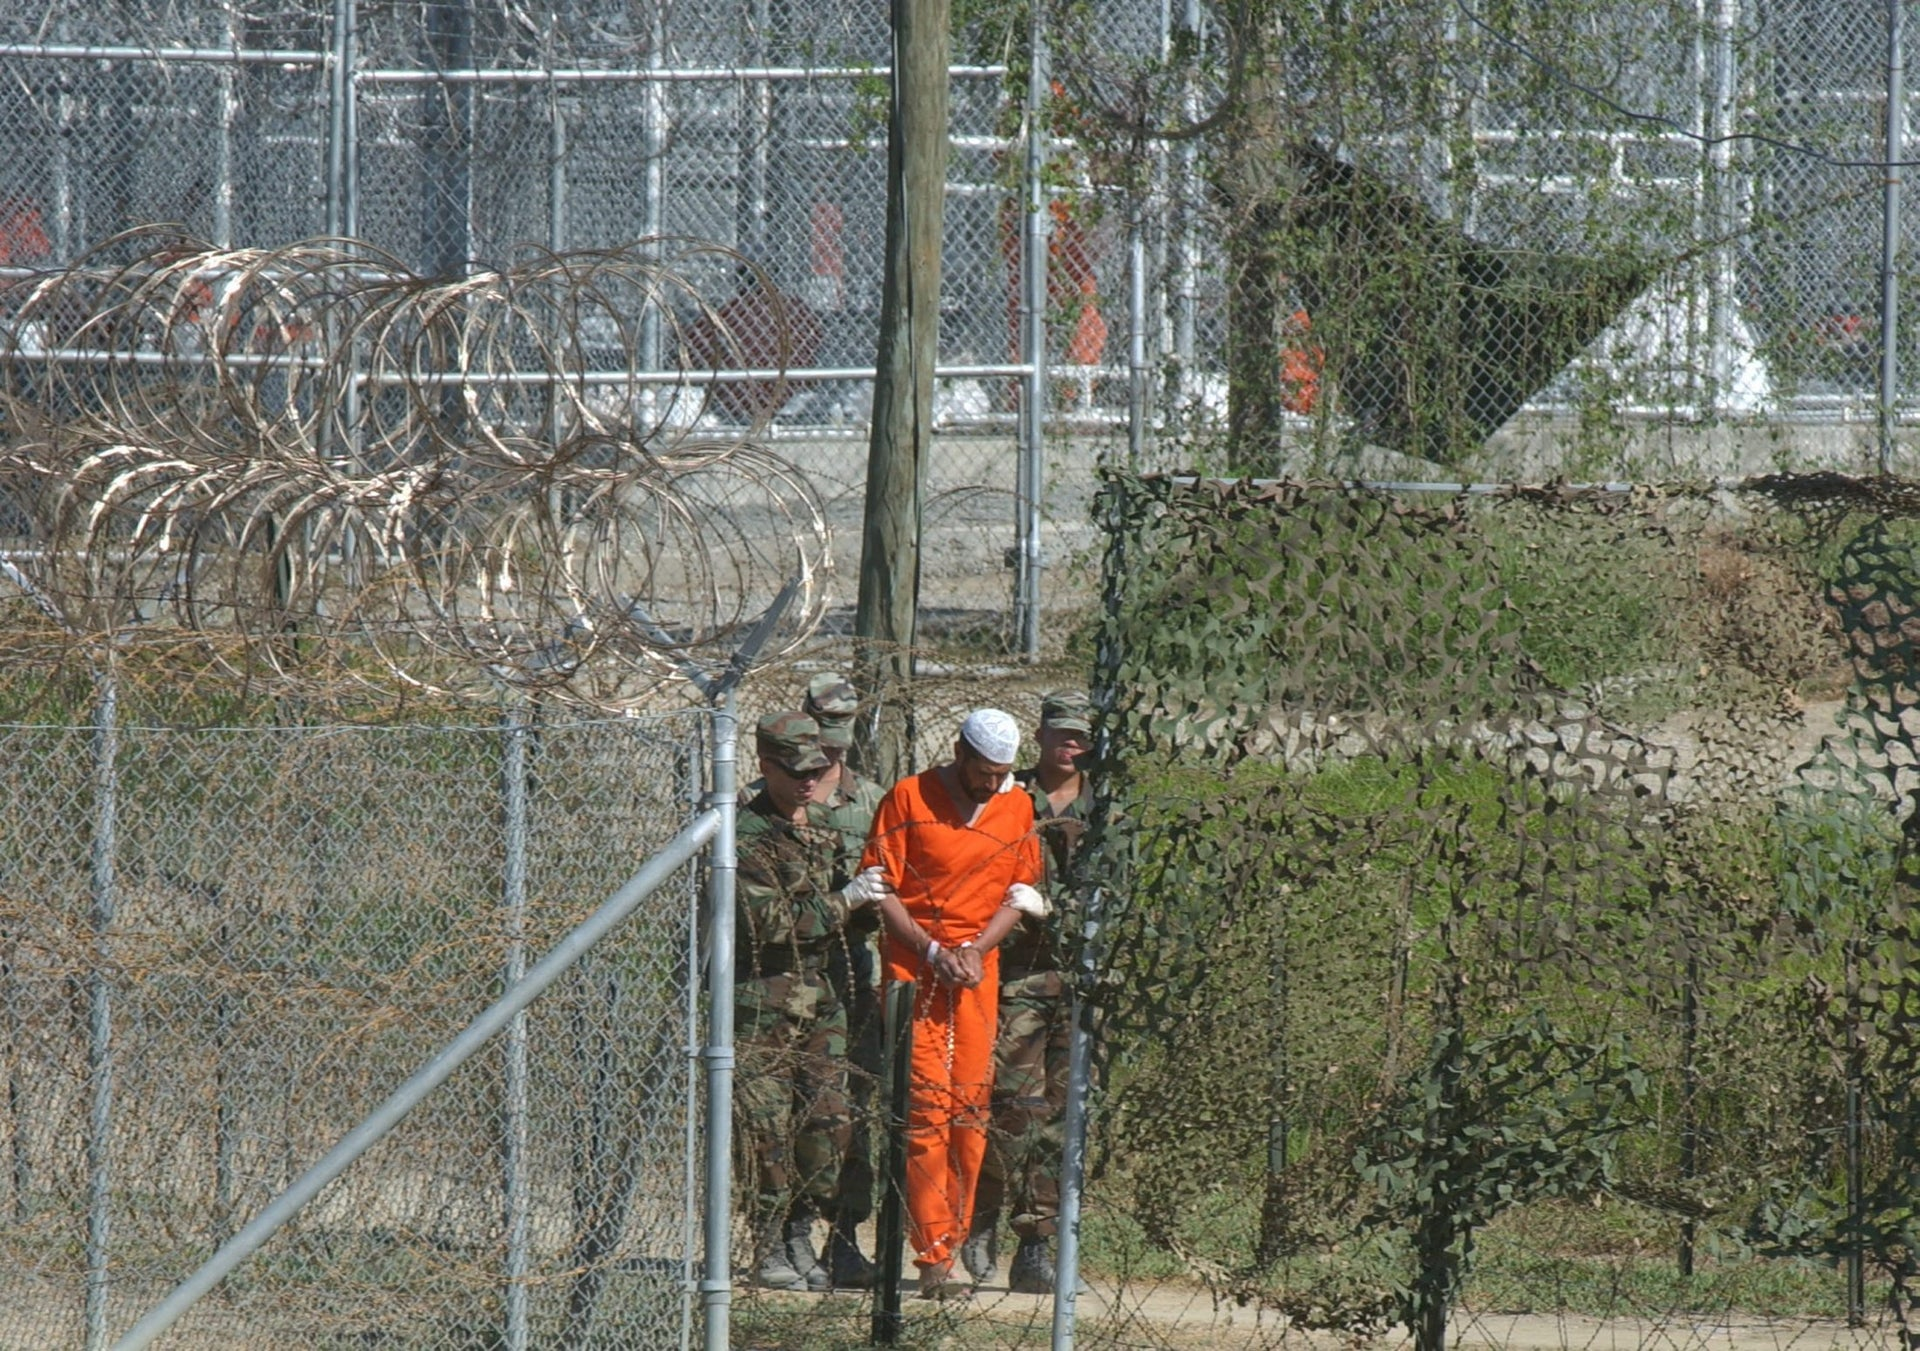 A detainee is escorted to interrogation by U.S. military guards at Camp X-Ray at Guantanamo Ba, Cuba, March 1, 2002.